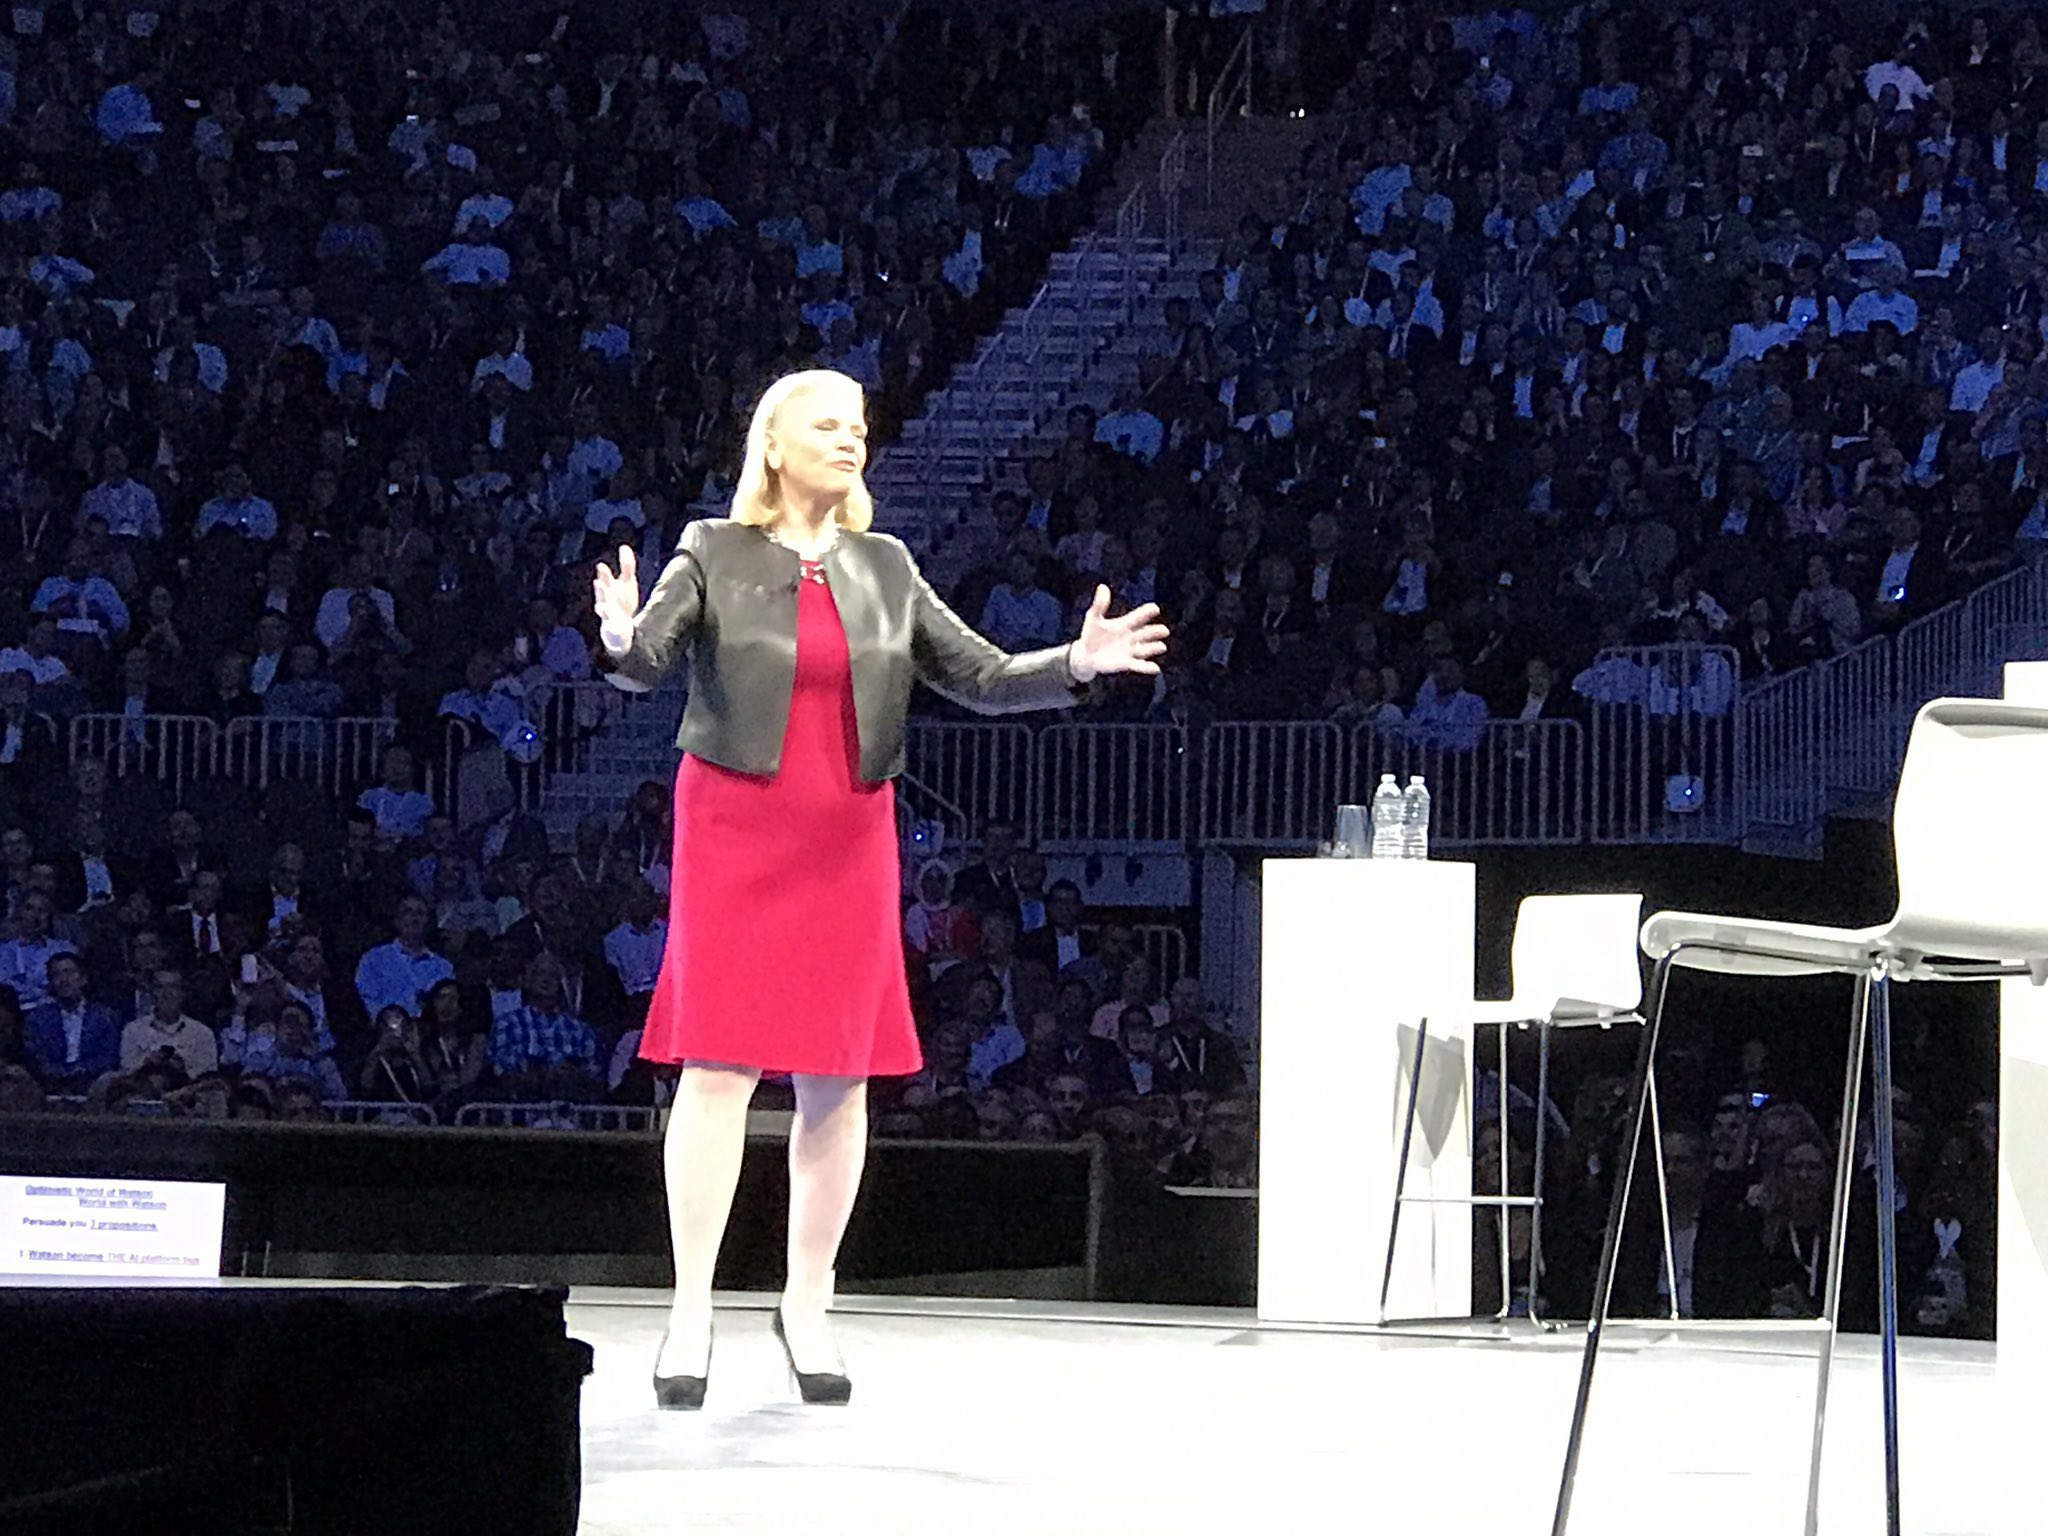 """Now @GinniRometty saying how #ai will make us """"smarter, safer, more secure, more productive."""" Expect """"memorable"""" talk. #ibmwow #ibmwatson https://t.co/OawxkJFNXQ"""